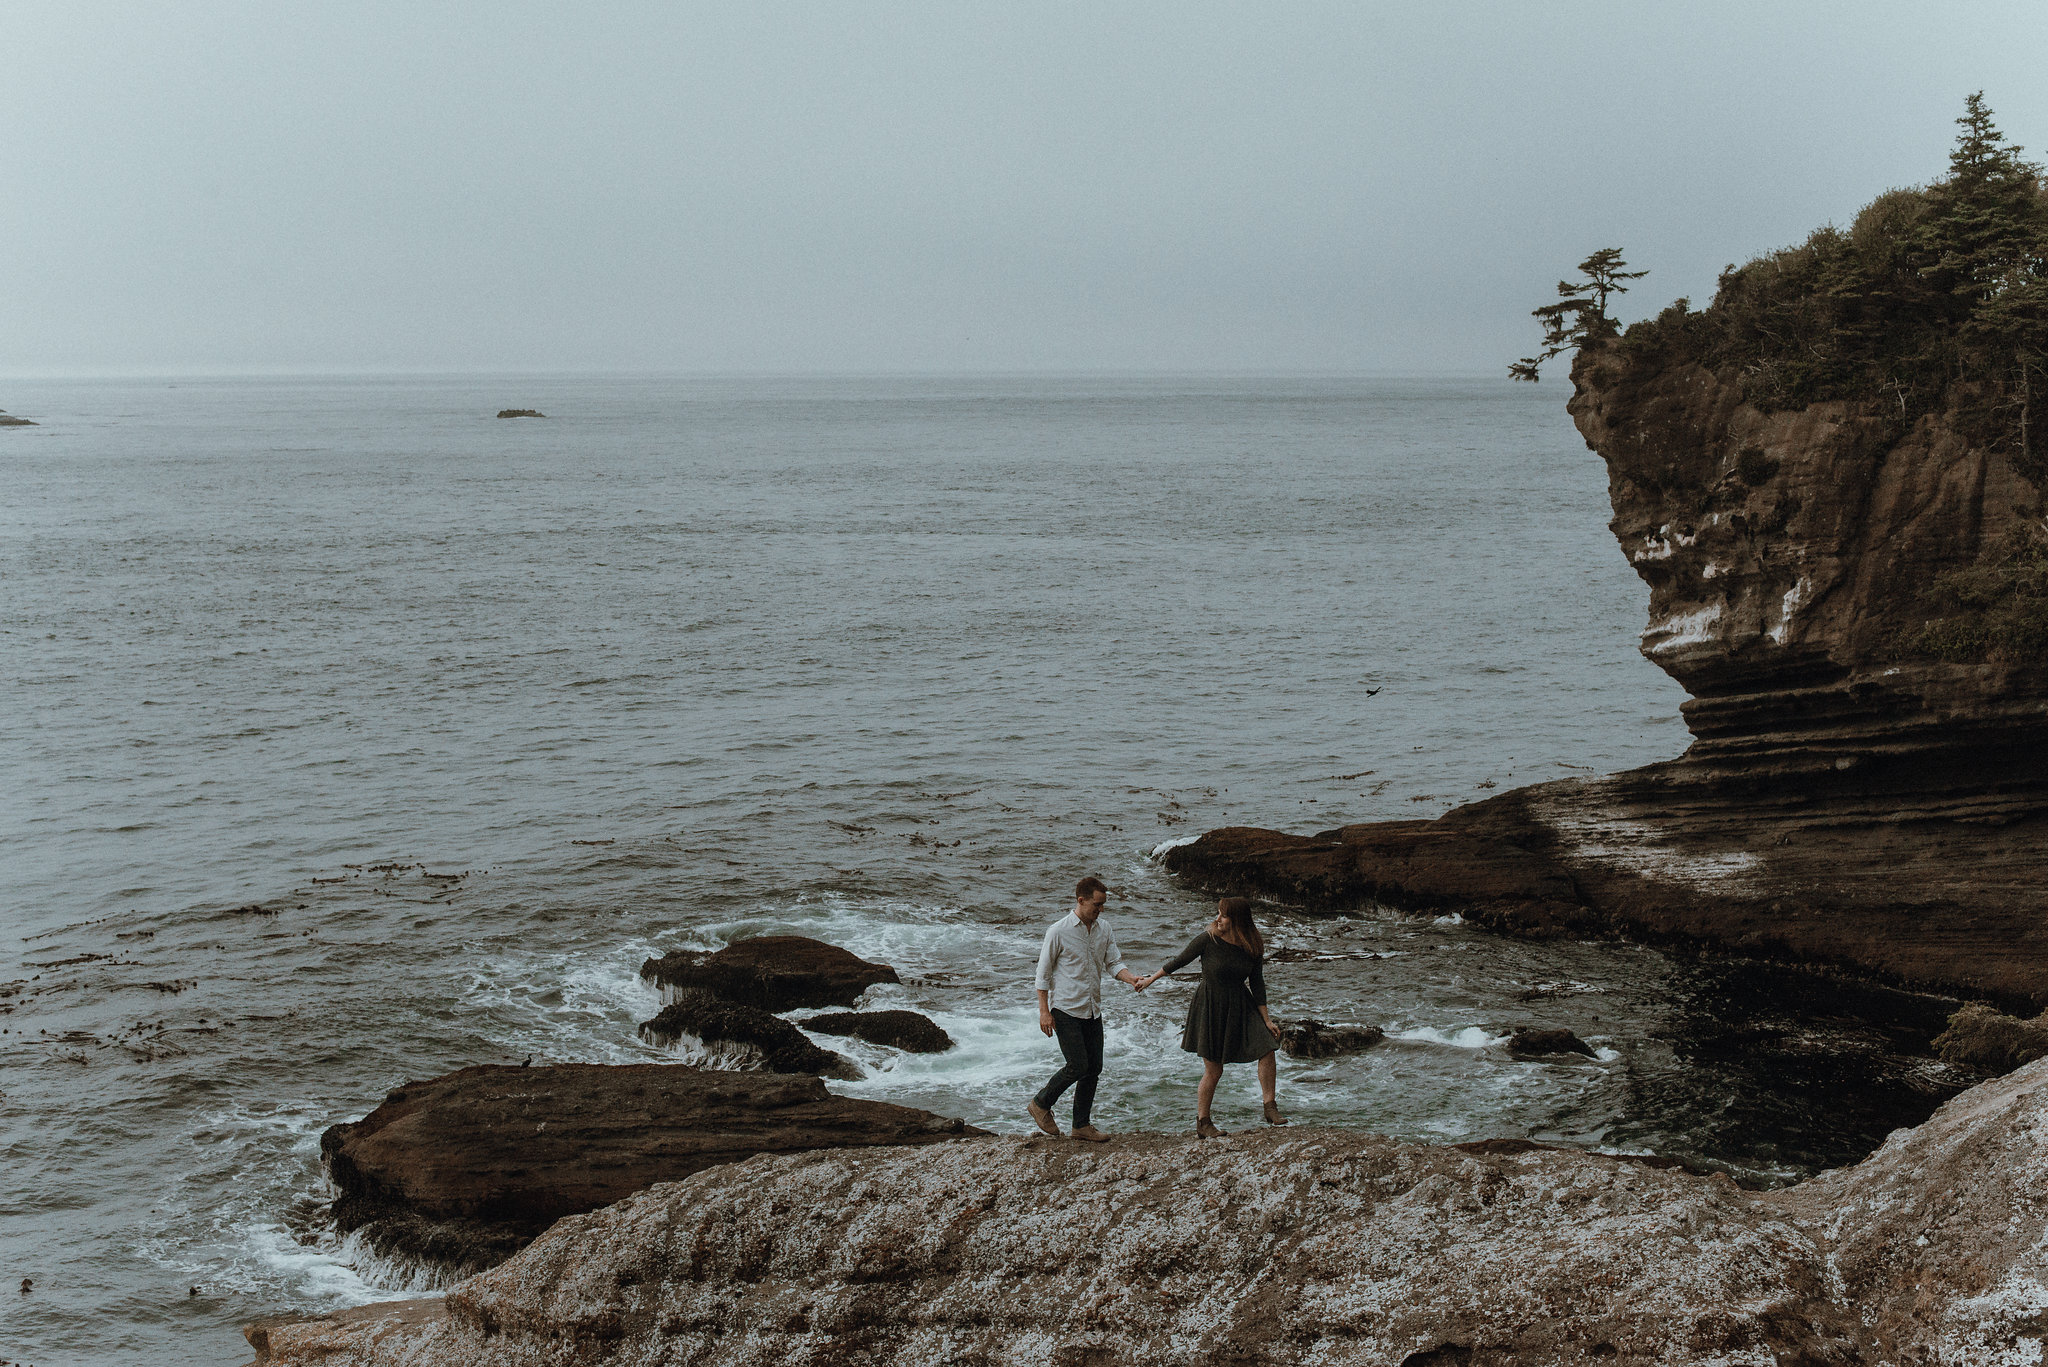 Couple holding hands and walking across rocks at ocean rocky coast.